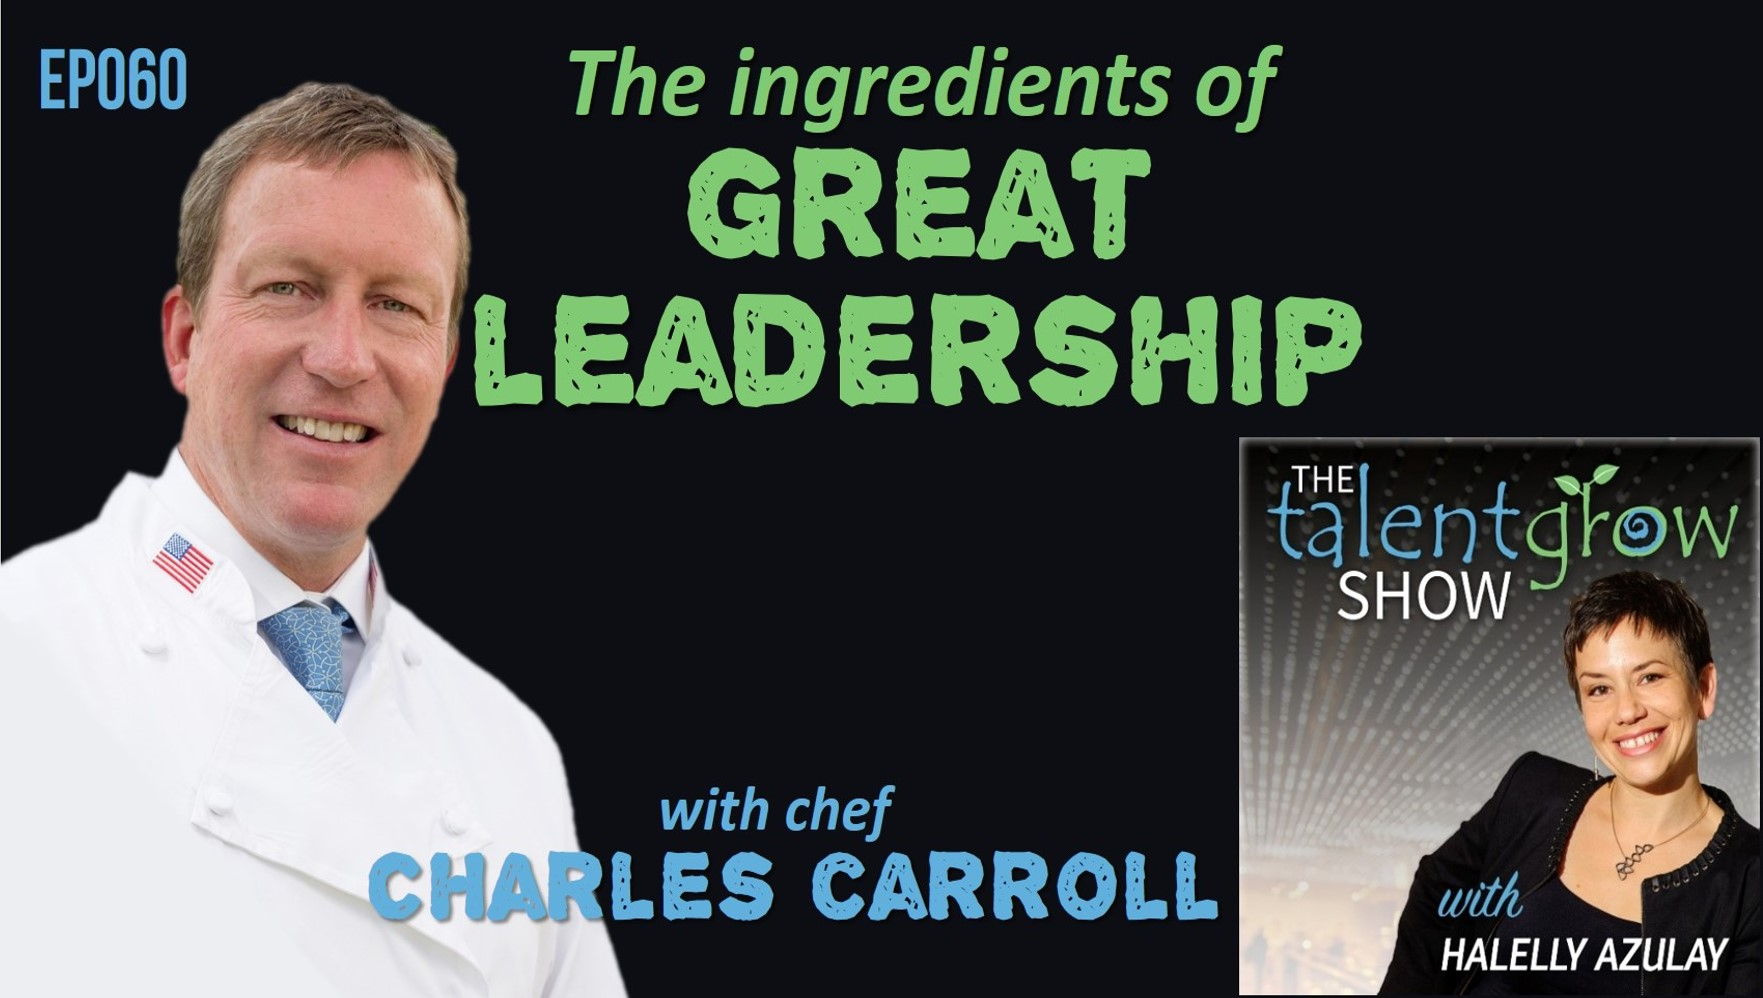 Ep060 the ingredients of great leadership with chef Charles Carroll on the TalentGrow Show podcast with Halelly Azulay